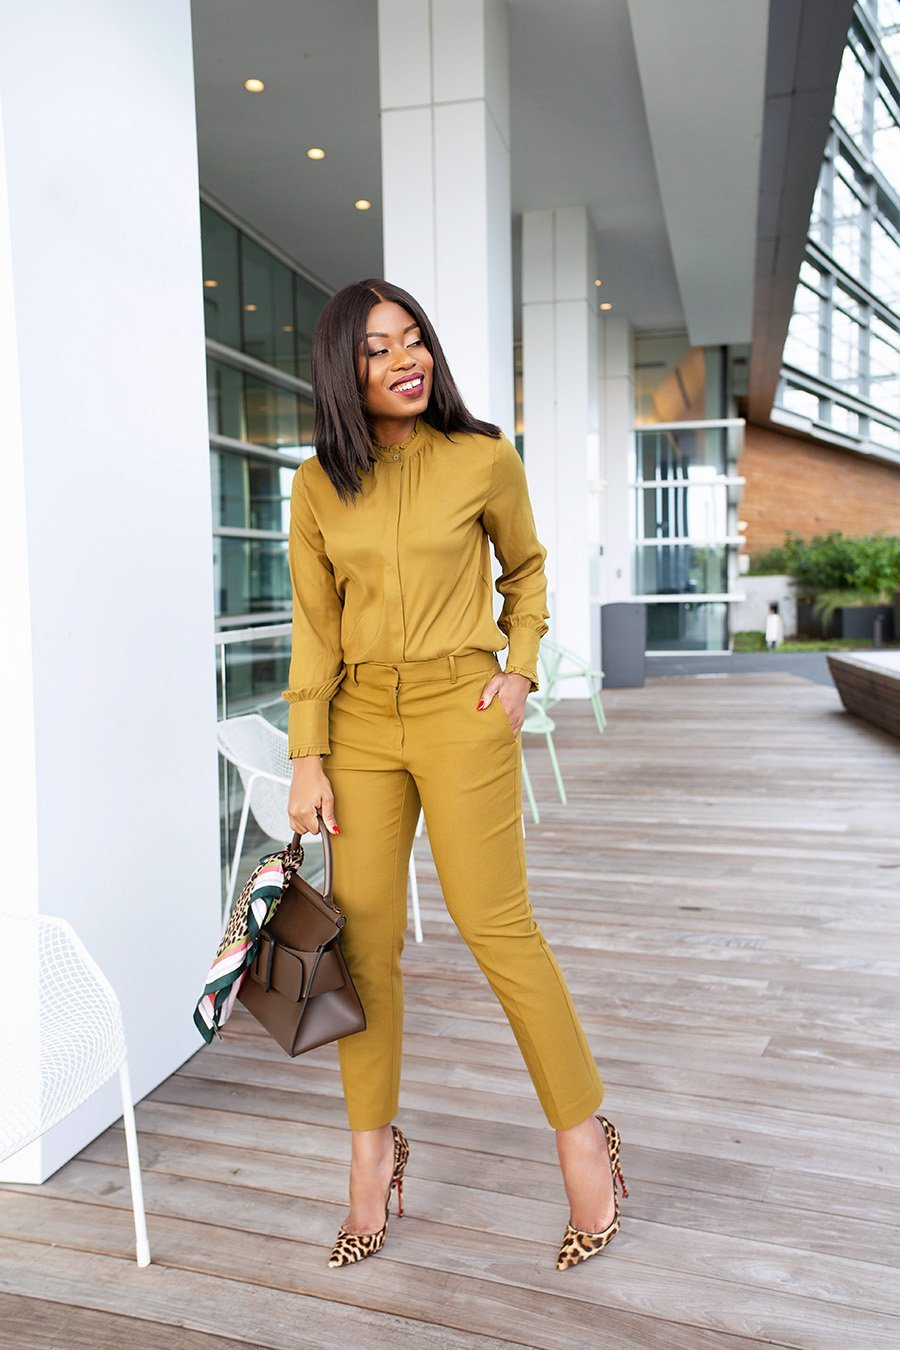 Stella Adewunmi shares monochromatic work style to wear to office today